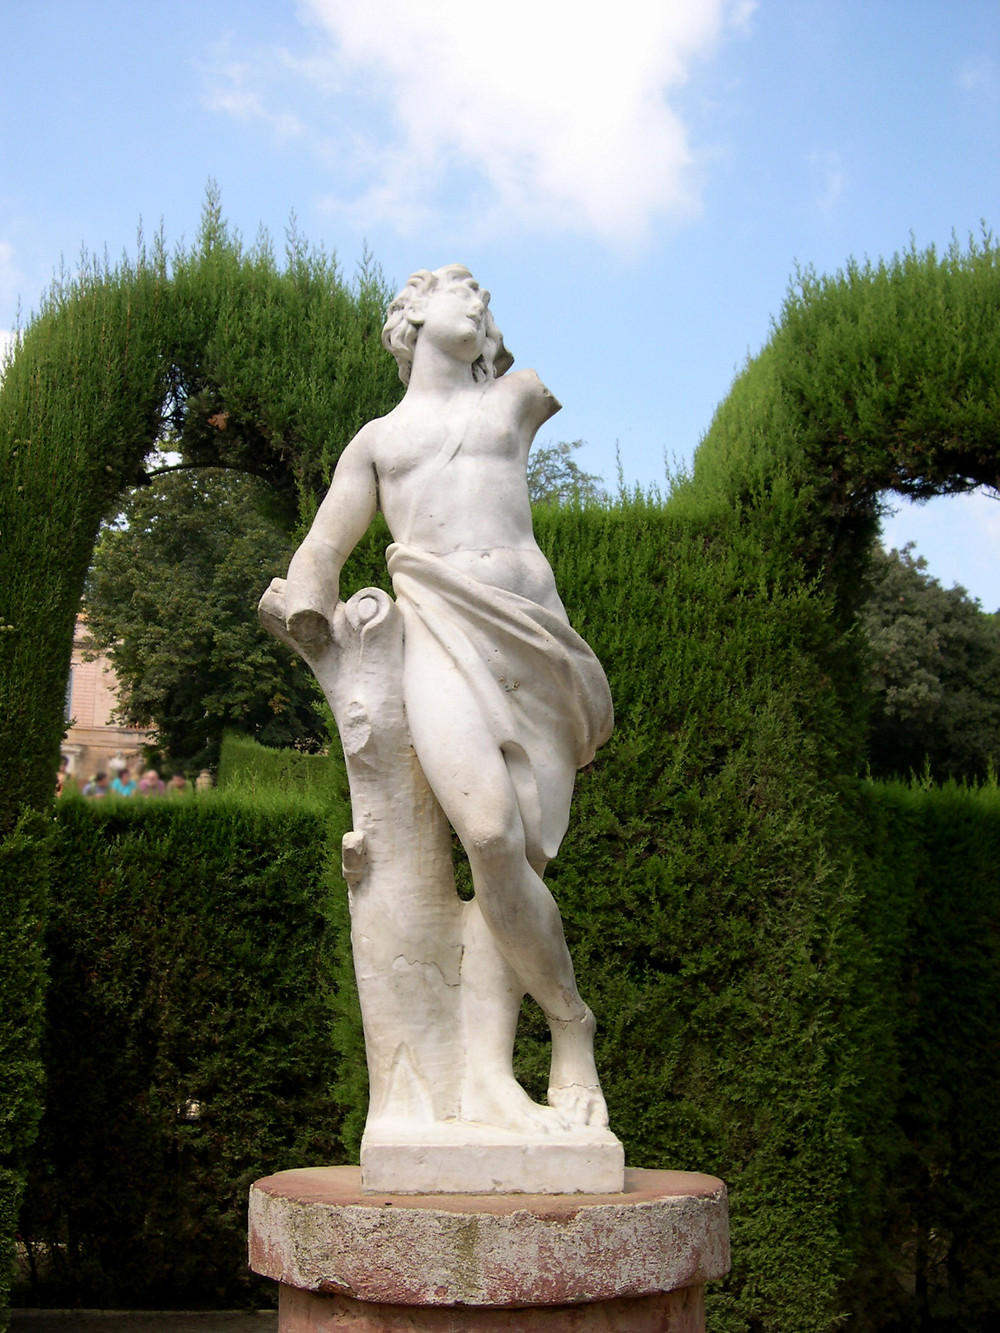 A statue of Eros the God of Love in Park of the Labyrinth of Horta